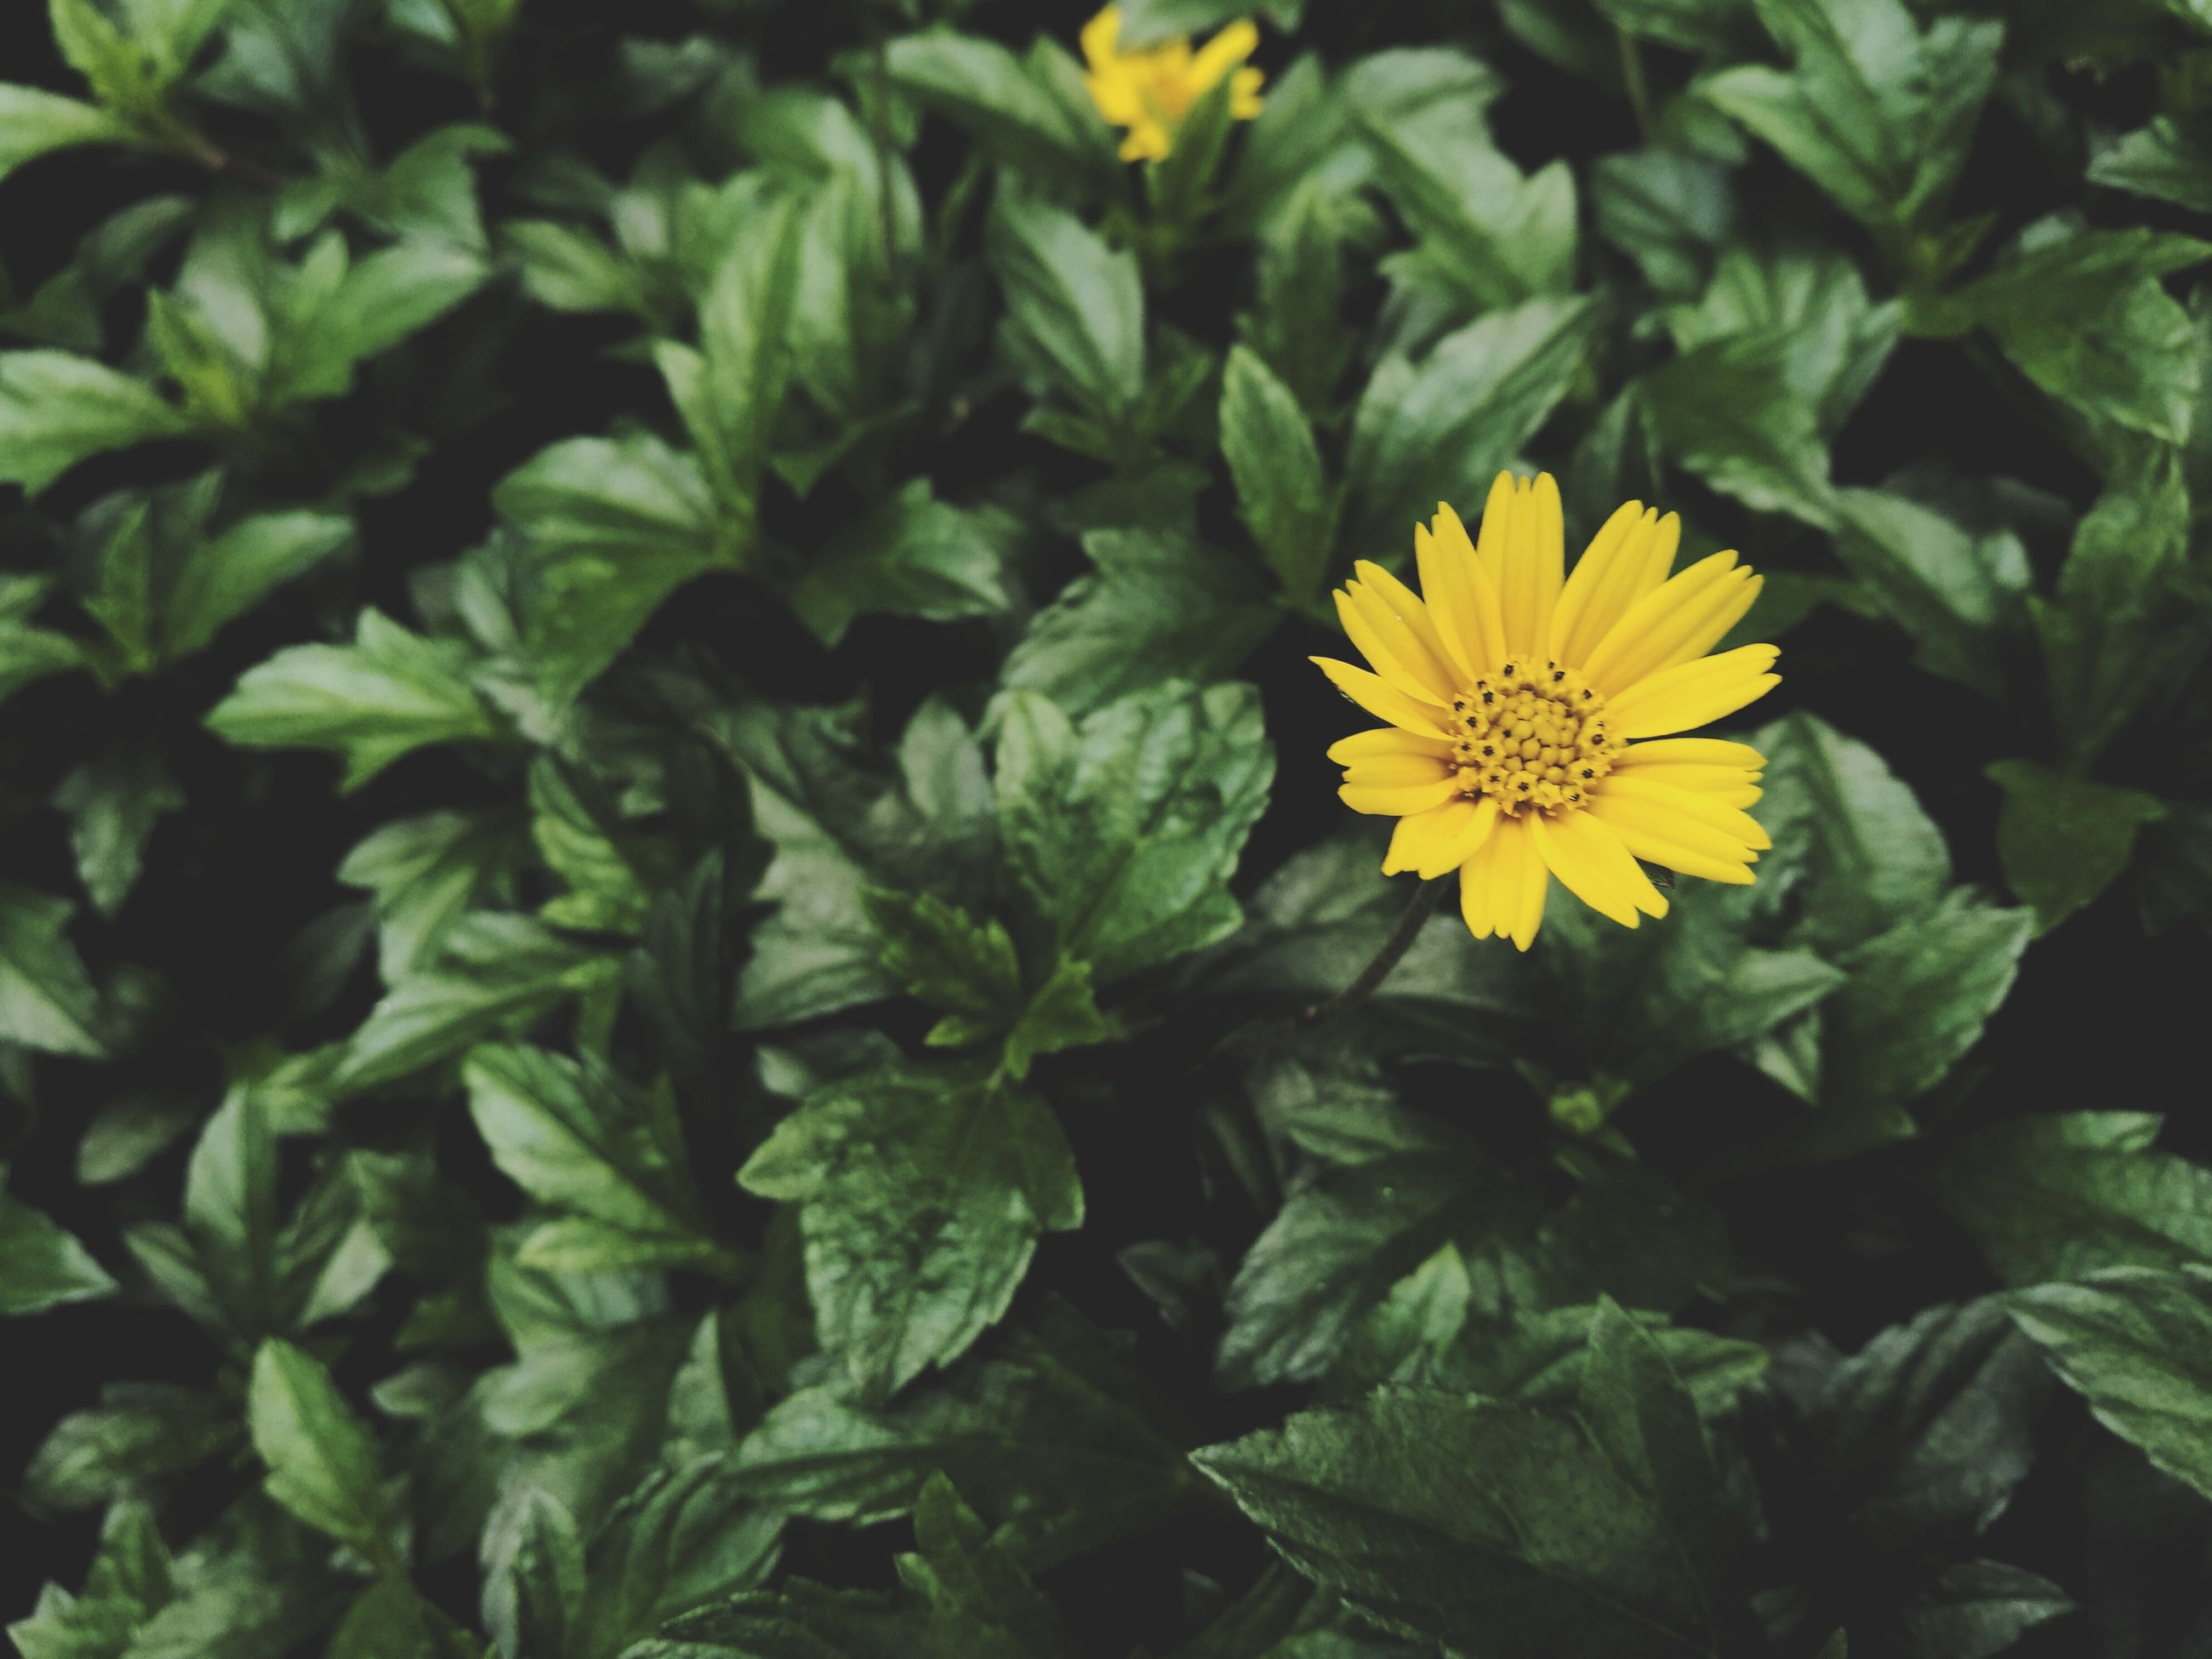 flower, yellow, beauty in nature, petal, nature, fragility, freshness, flower head, no people, leaf, close-up, plant, growth, green color, day, outdoors, blooming